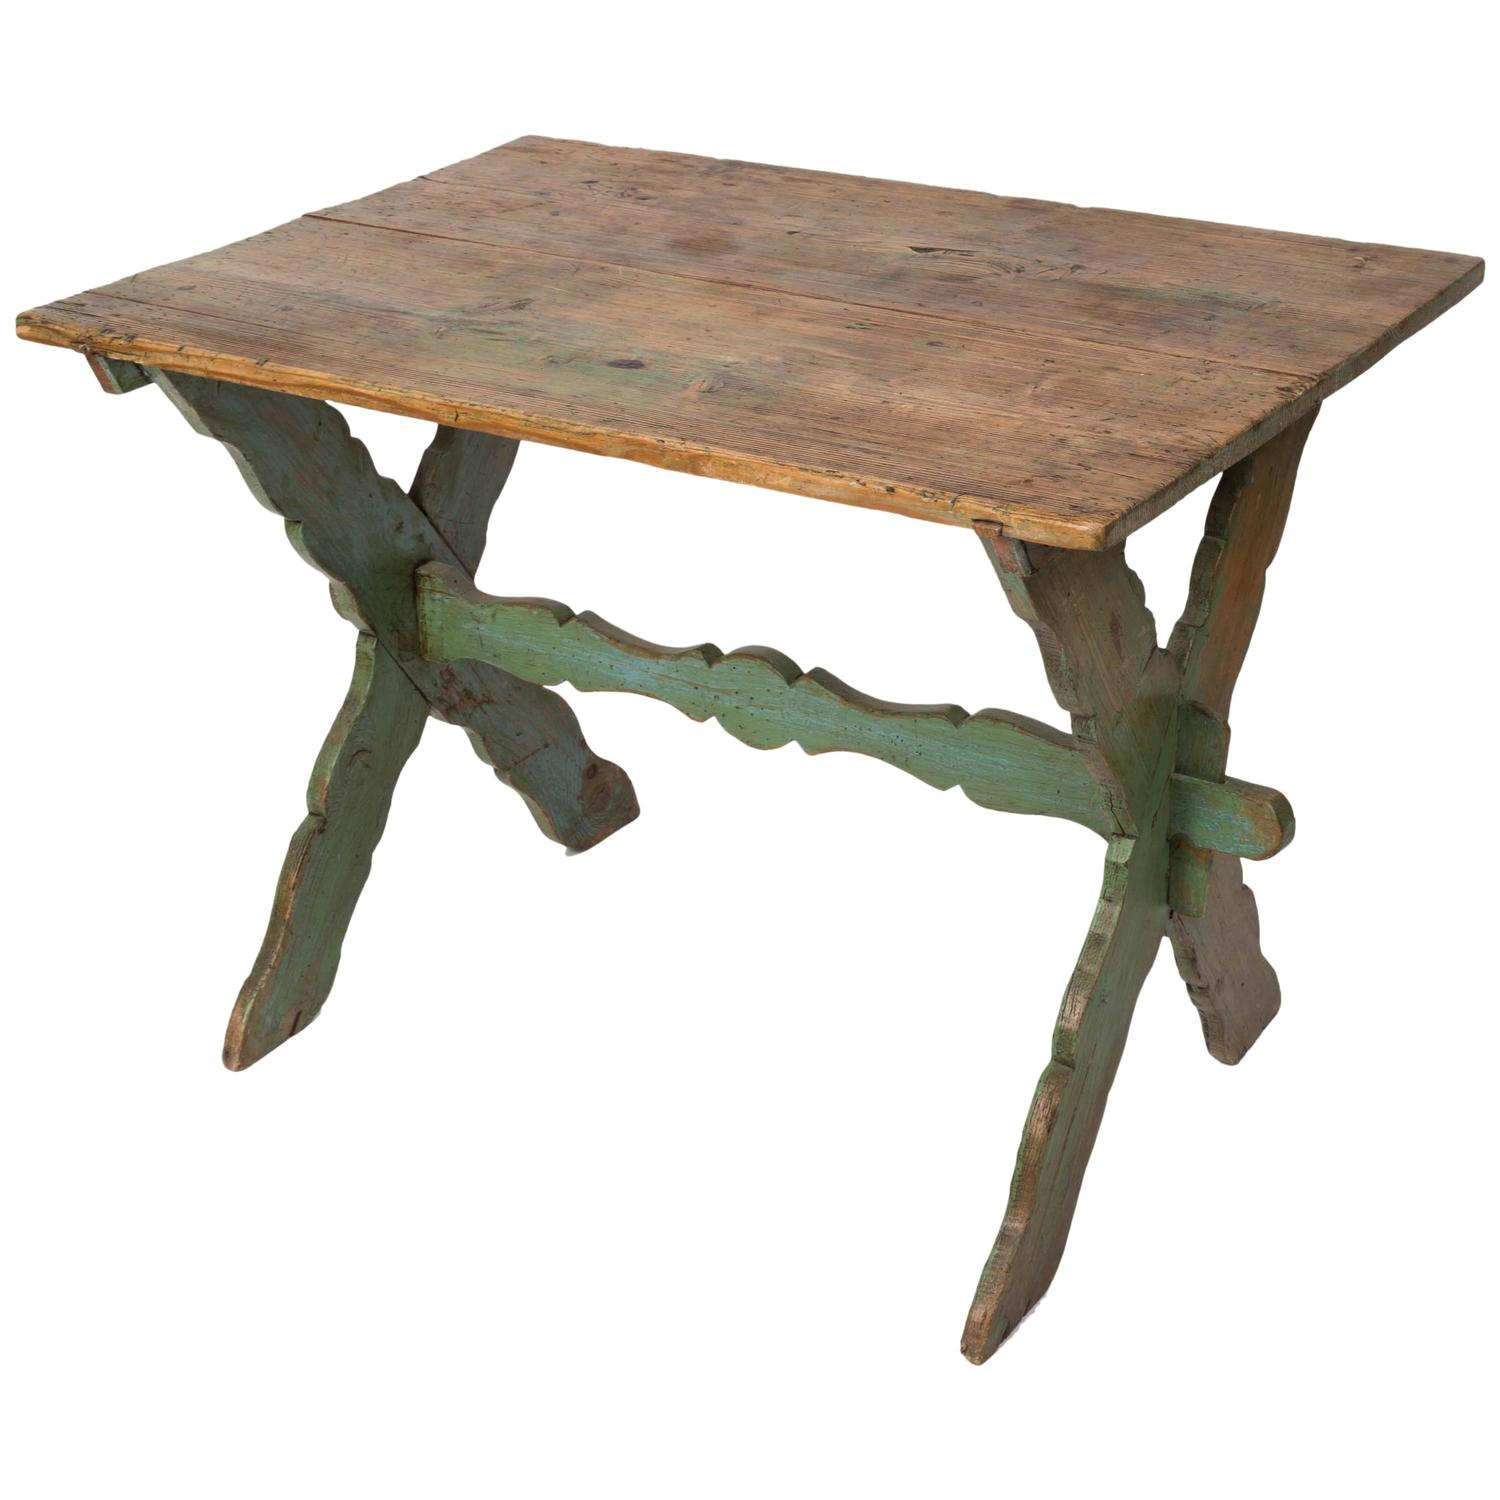 Rustic Farm Table With Painted Wood Base At 1stdibs. Full resolution  file, nominally Width 1500 Height 1500 pixels, file with #926639.